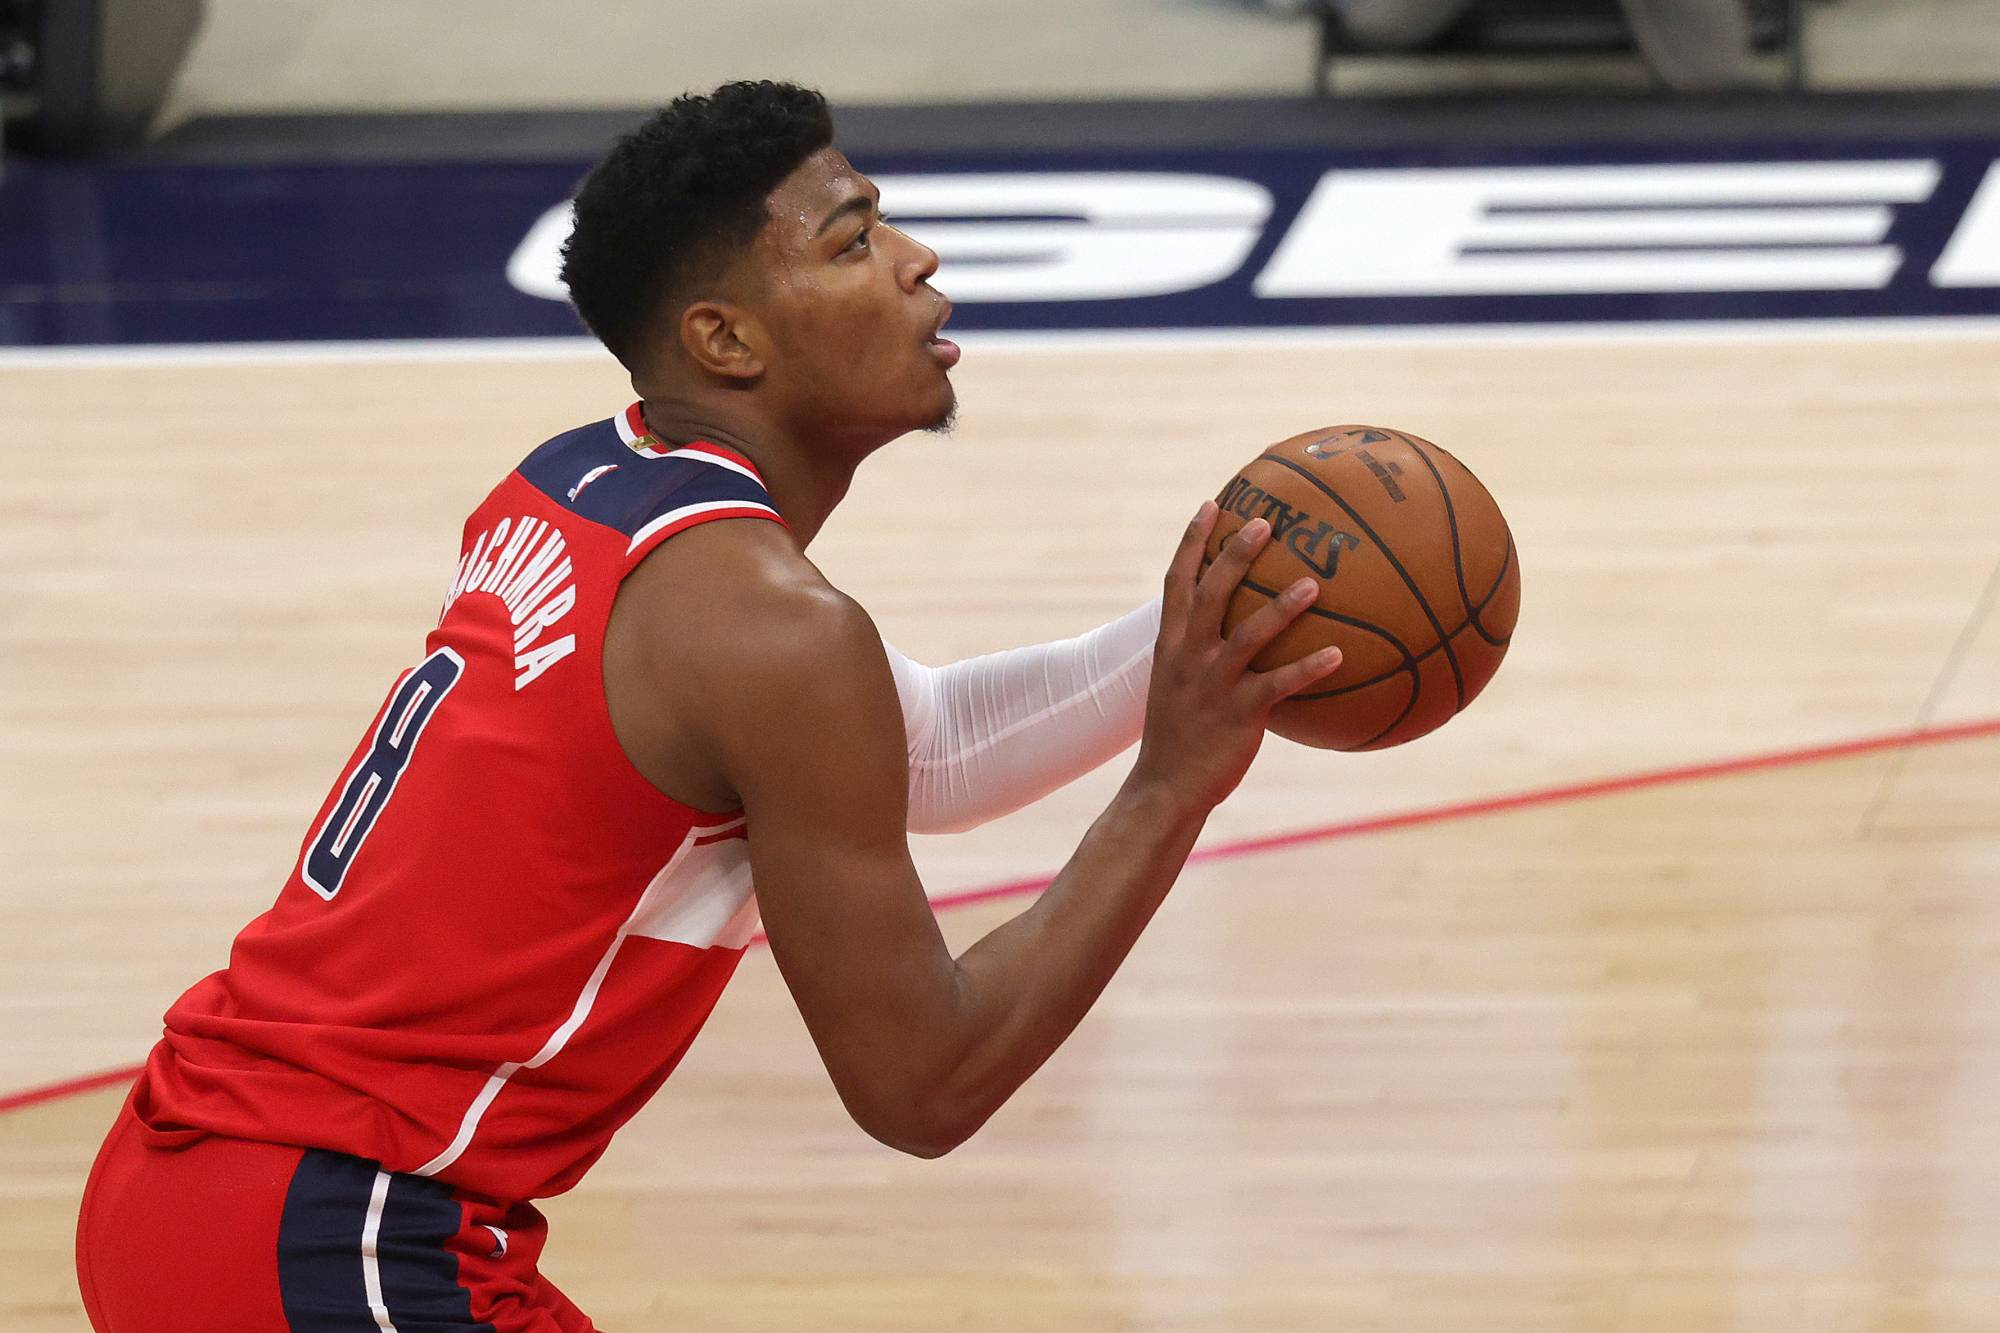 The Wizards' Rui Hachimura shoots a free throw against the Bulls in Washington on Dec. 31. | USA TODAY / VIA REUTERS